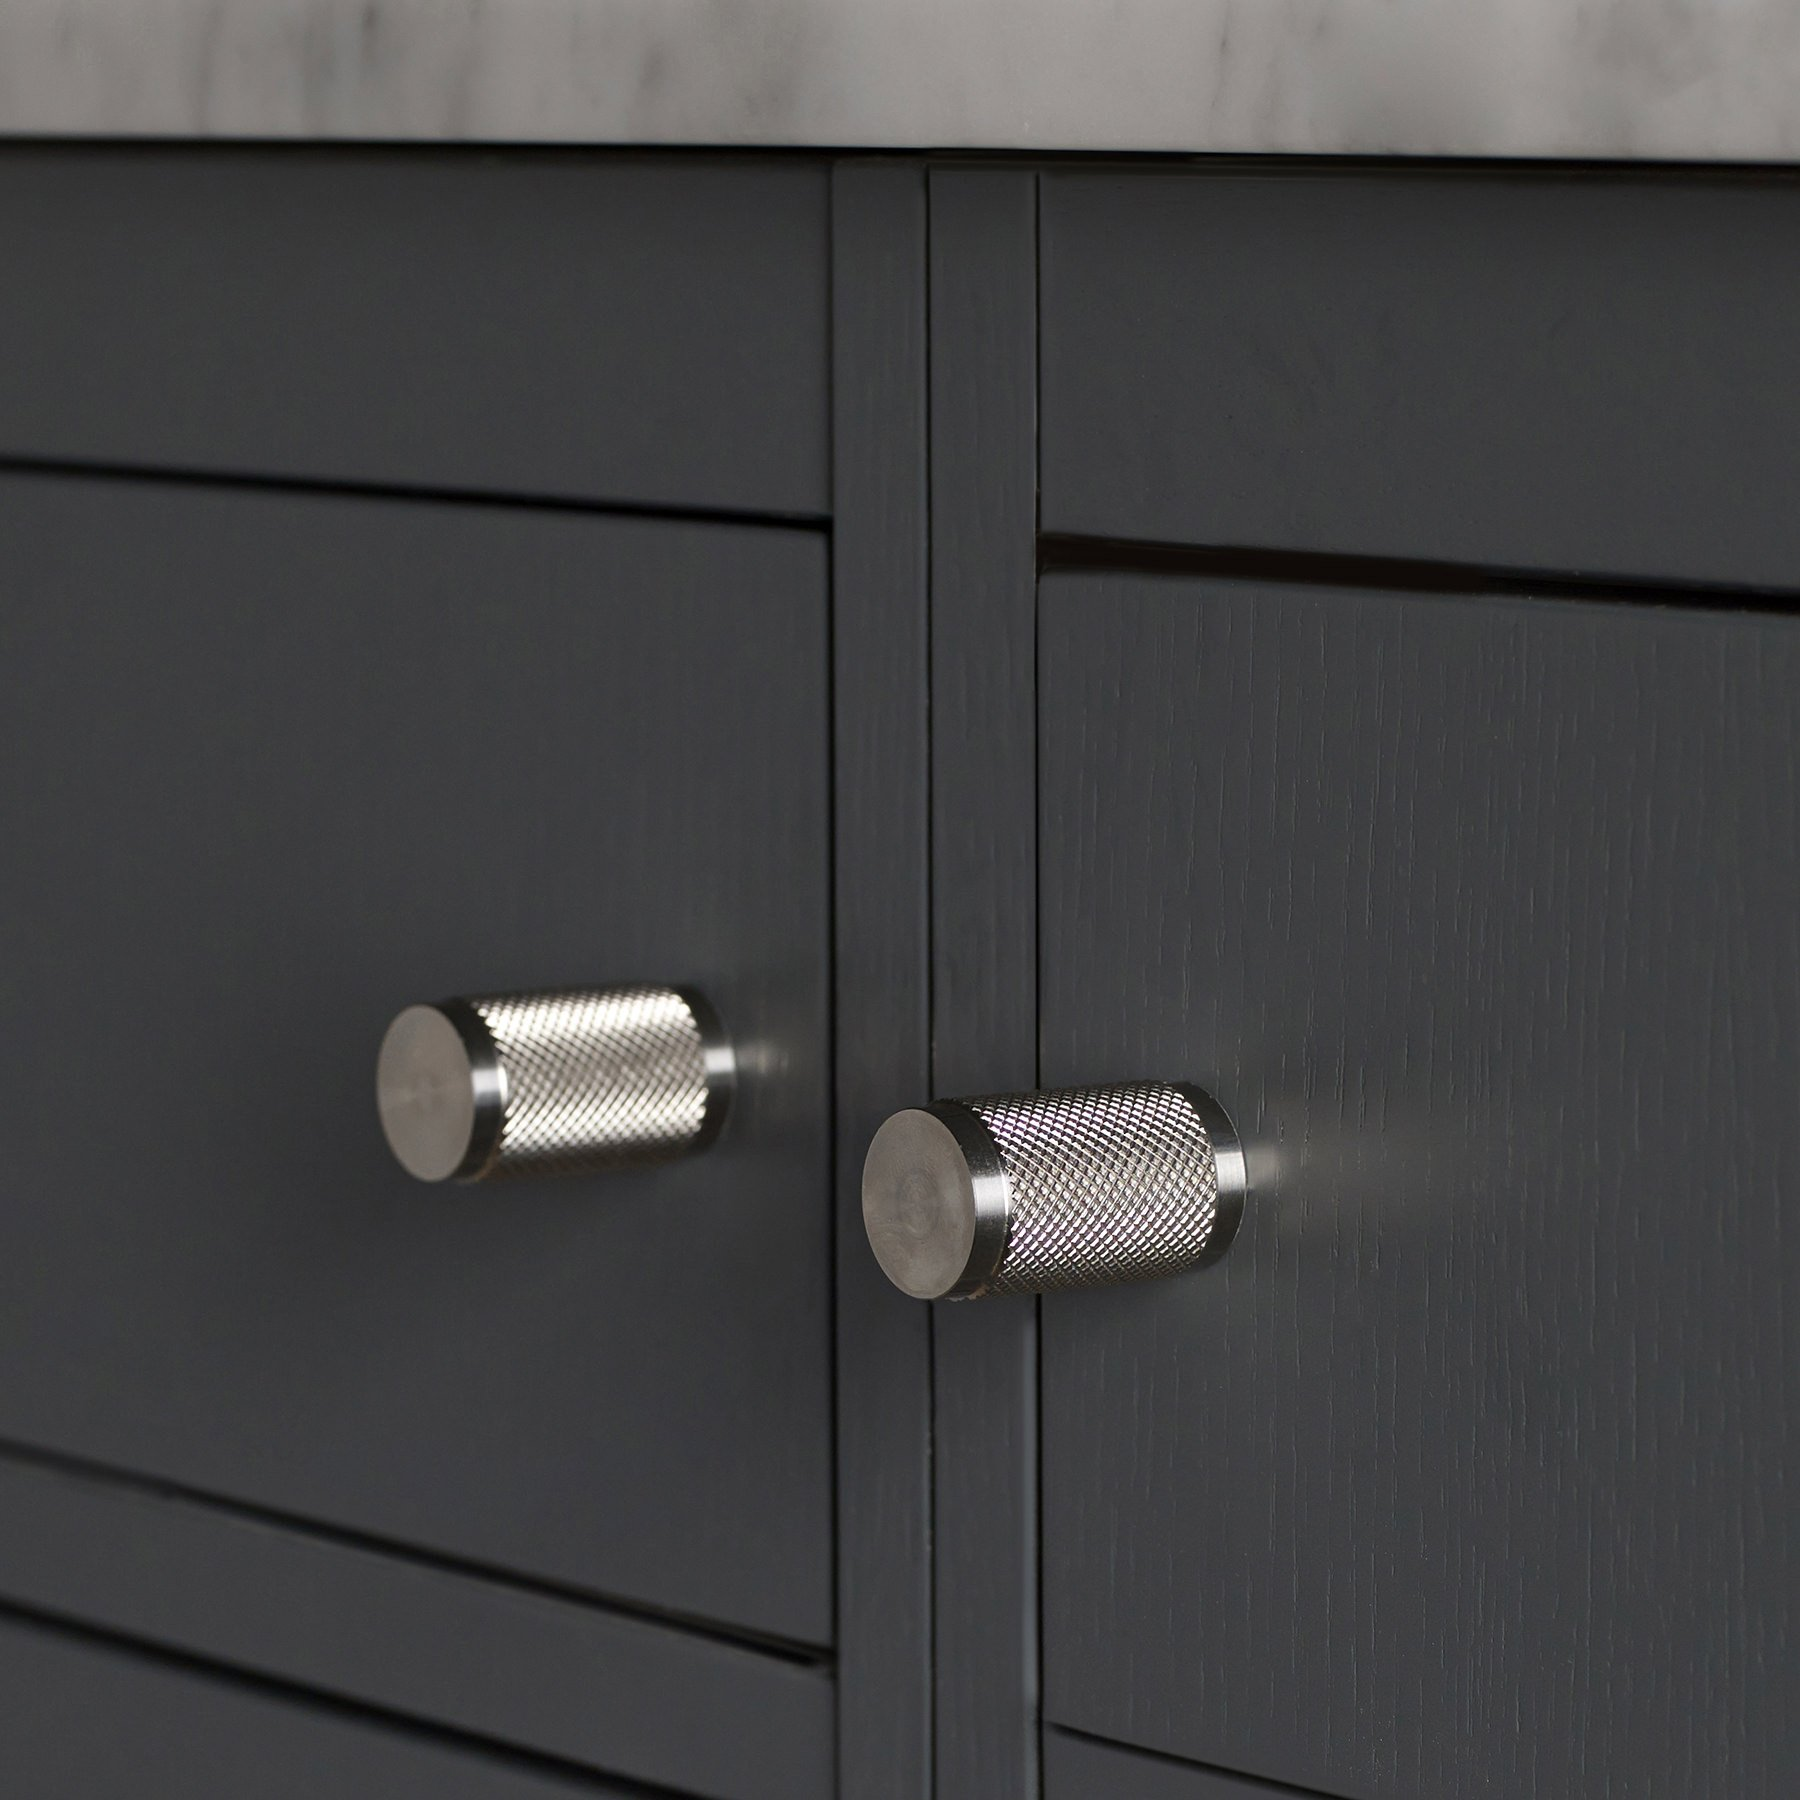 buster_punch_-_furniture_knob_-_steel_-_lifestyle-1